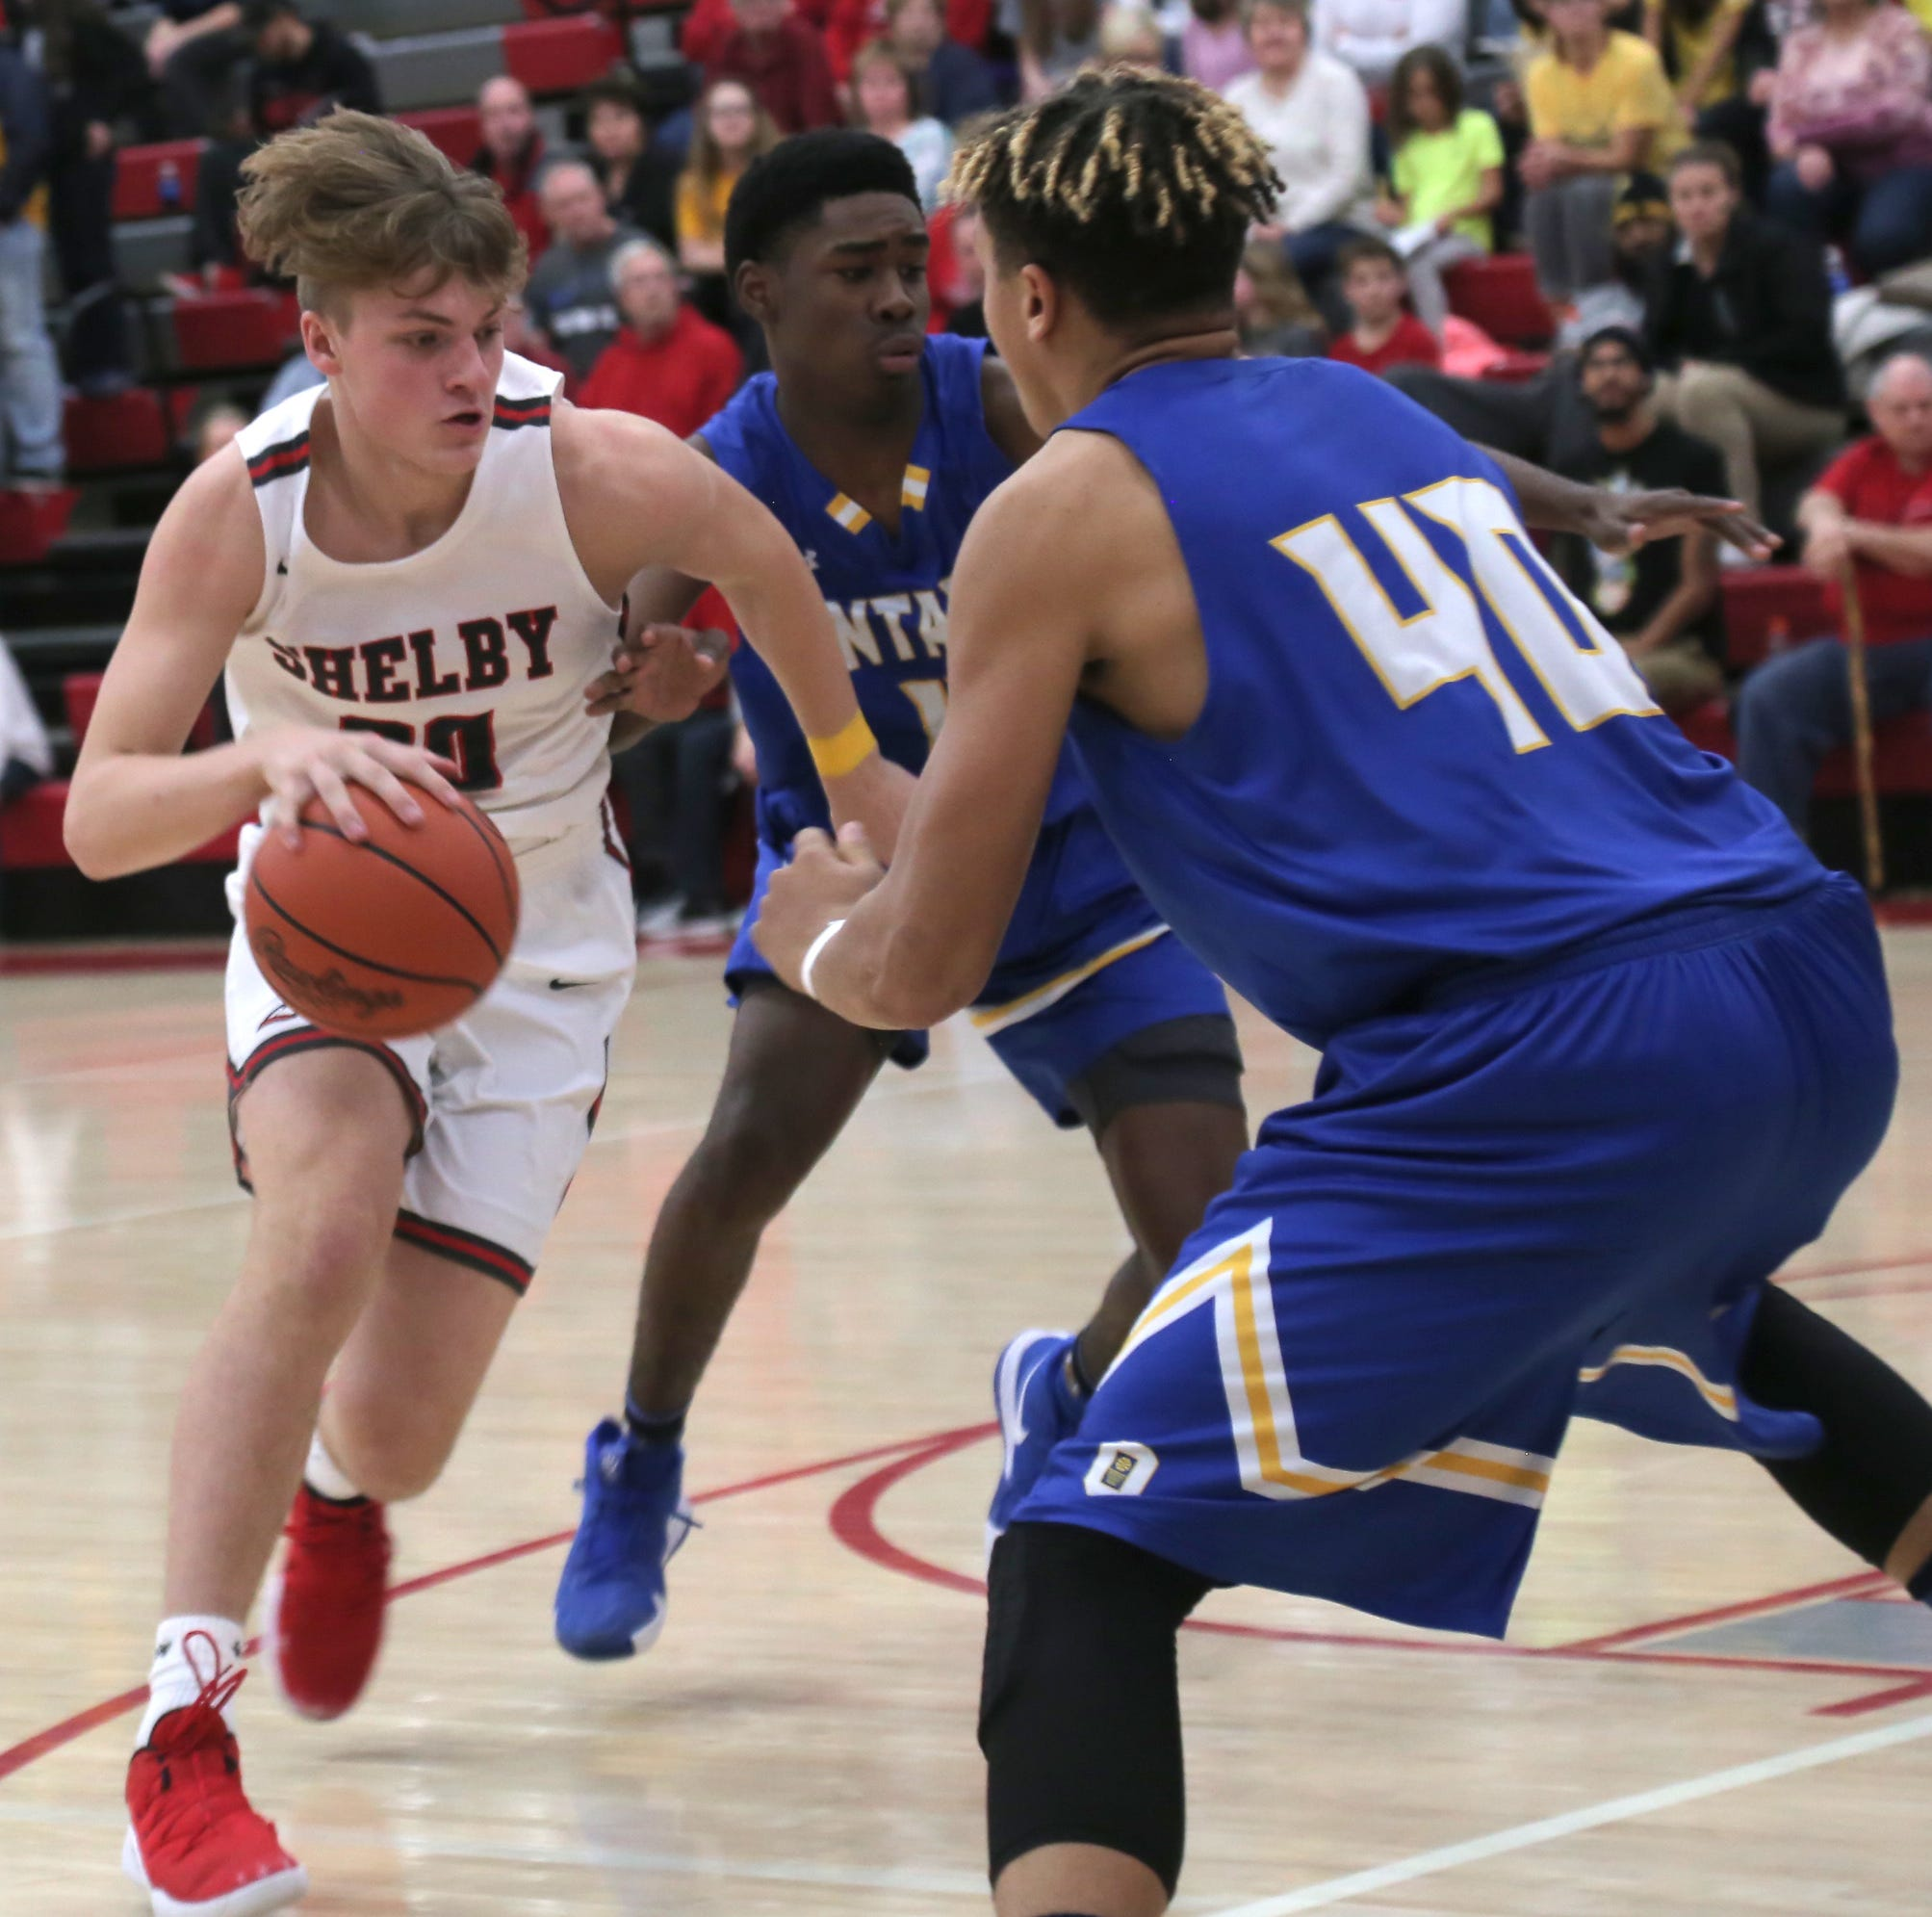 Shelby Whippets knock off Ontario Warriors in big early-season league matchup